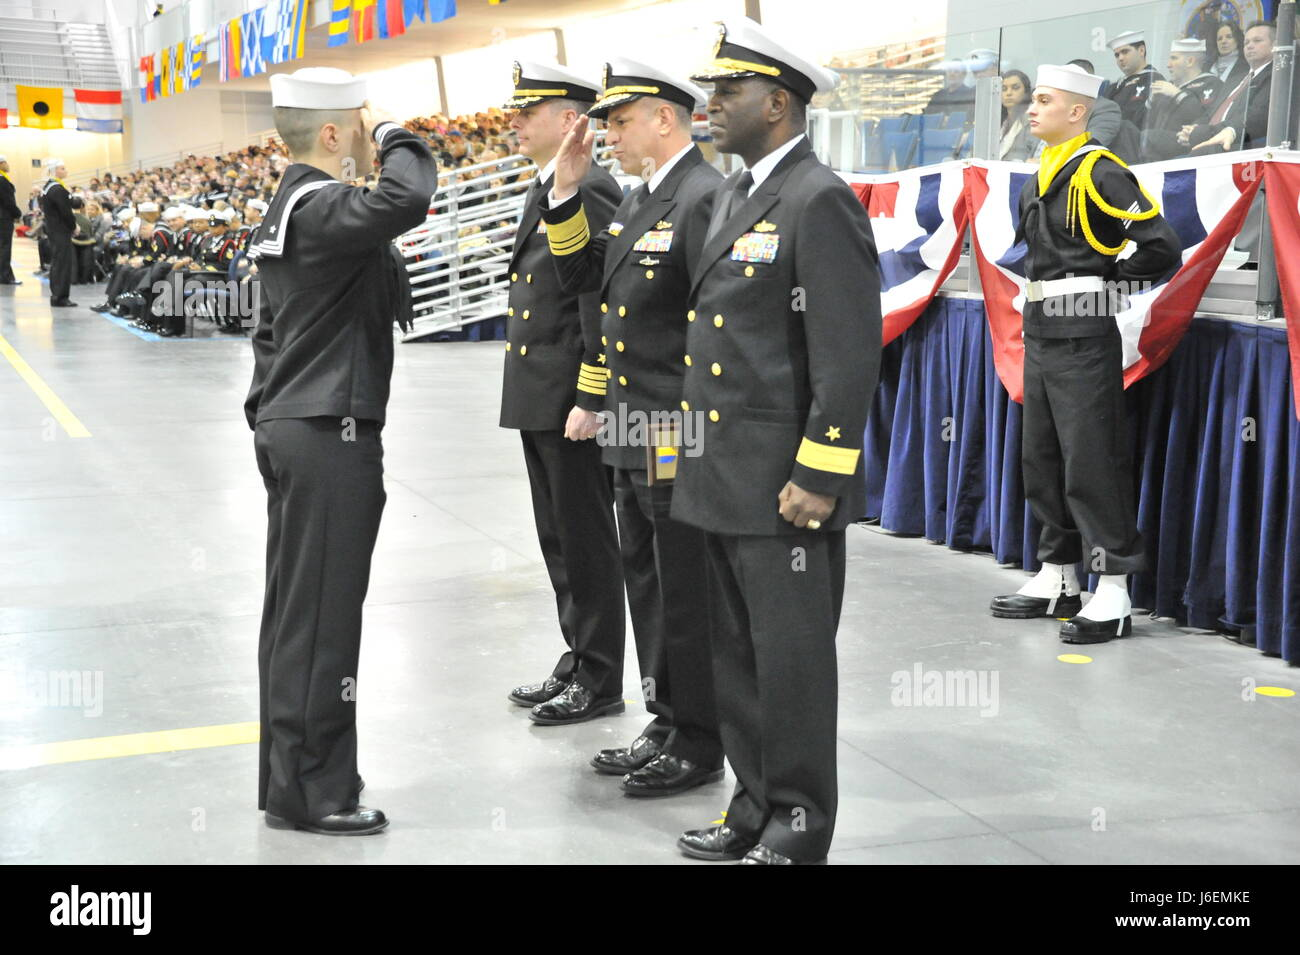 161216-N-CM124-295   GREAT LAKES, Ill. (Dec. 16, 2016) Chief of Naval Personnel Robert P. Burke salutes a recruit - Stock Image